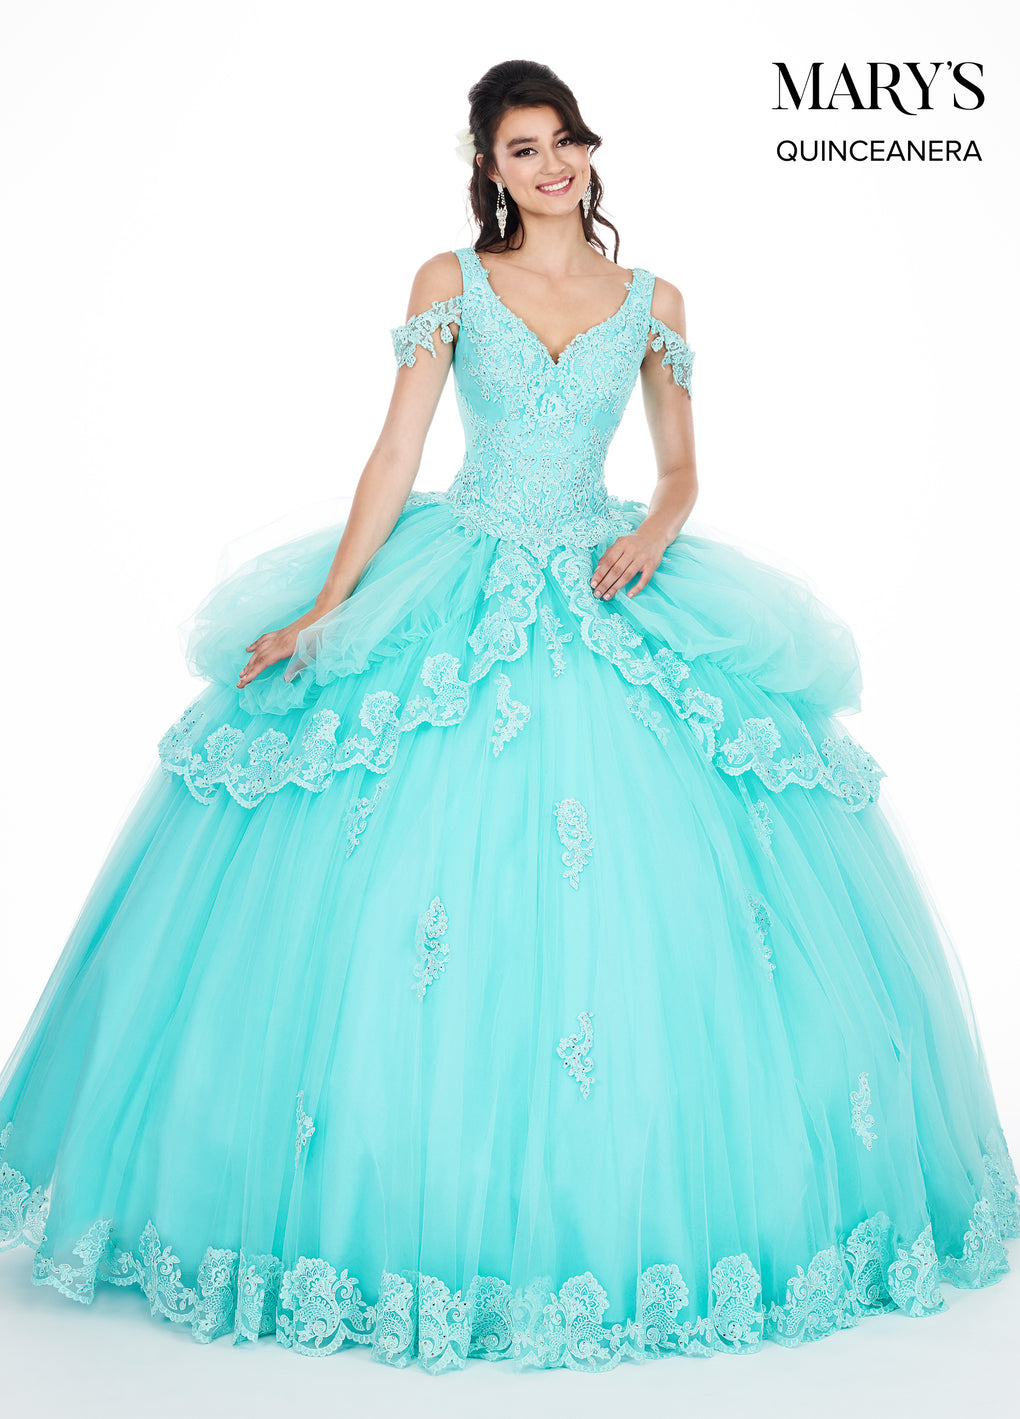 Marys Quinceanera Dresses in Aqua, Blush, or Yellow Color